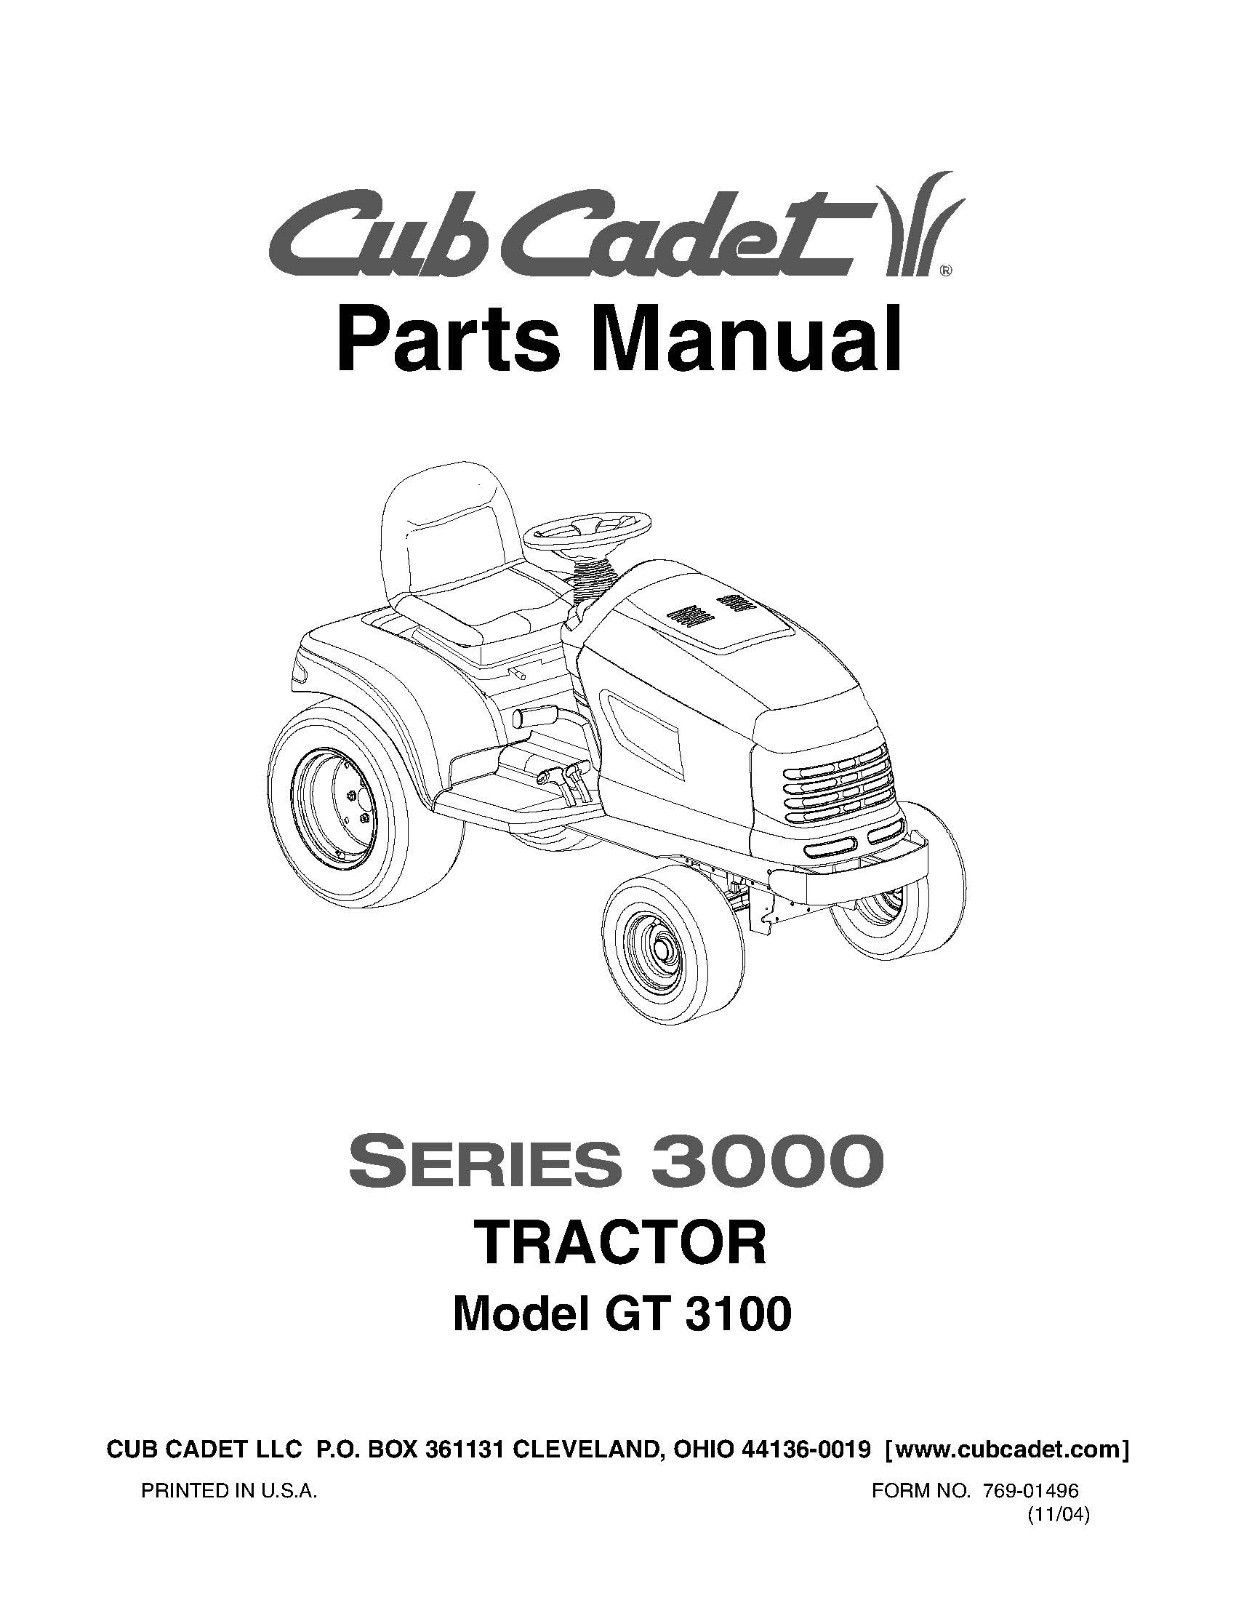 Cub Cadet Parts Manual Model No. GT 3100